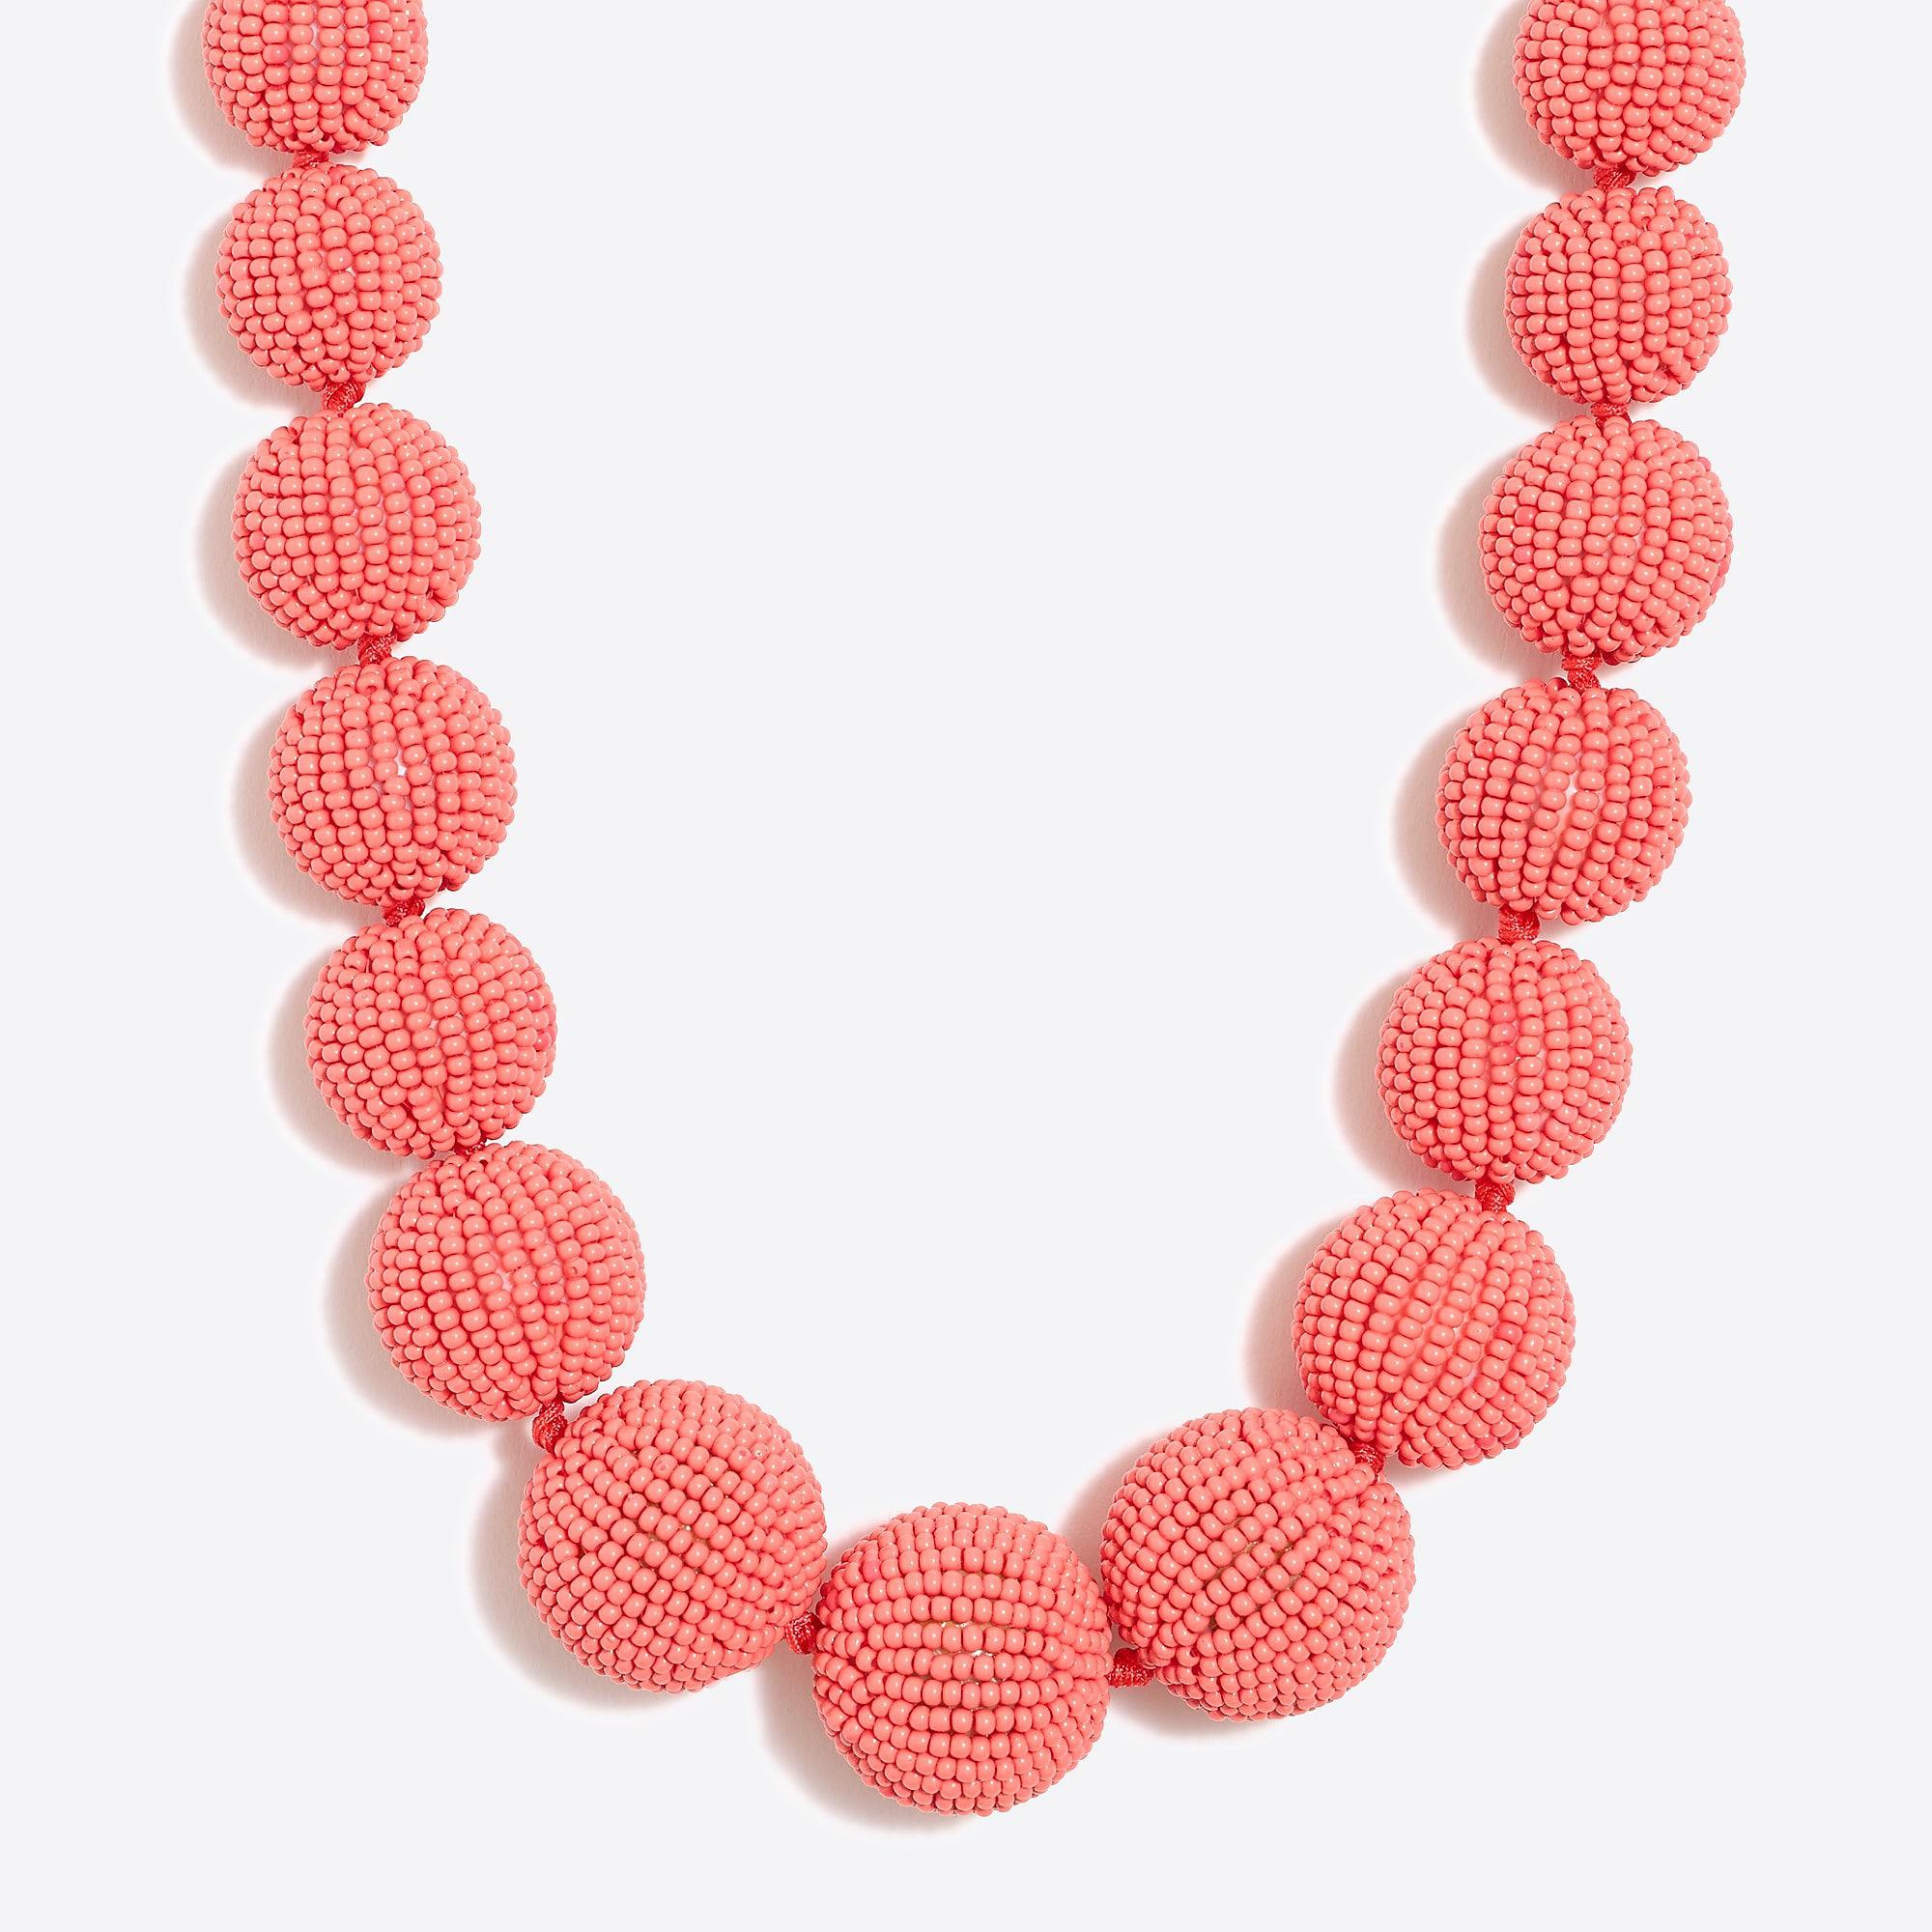 1b2957928c6e85 Gallery. Previously sold at: J.Crew Factory · Women's Beaded Necklaces